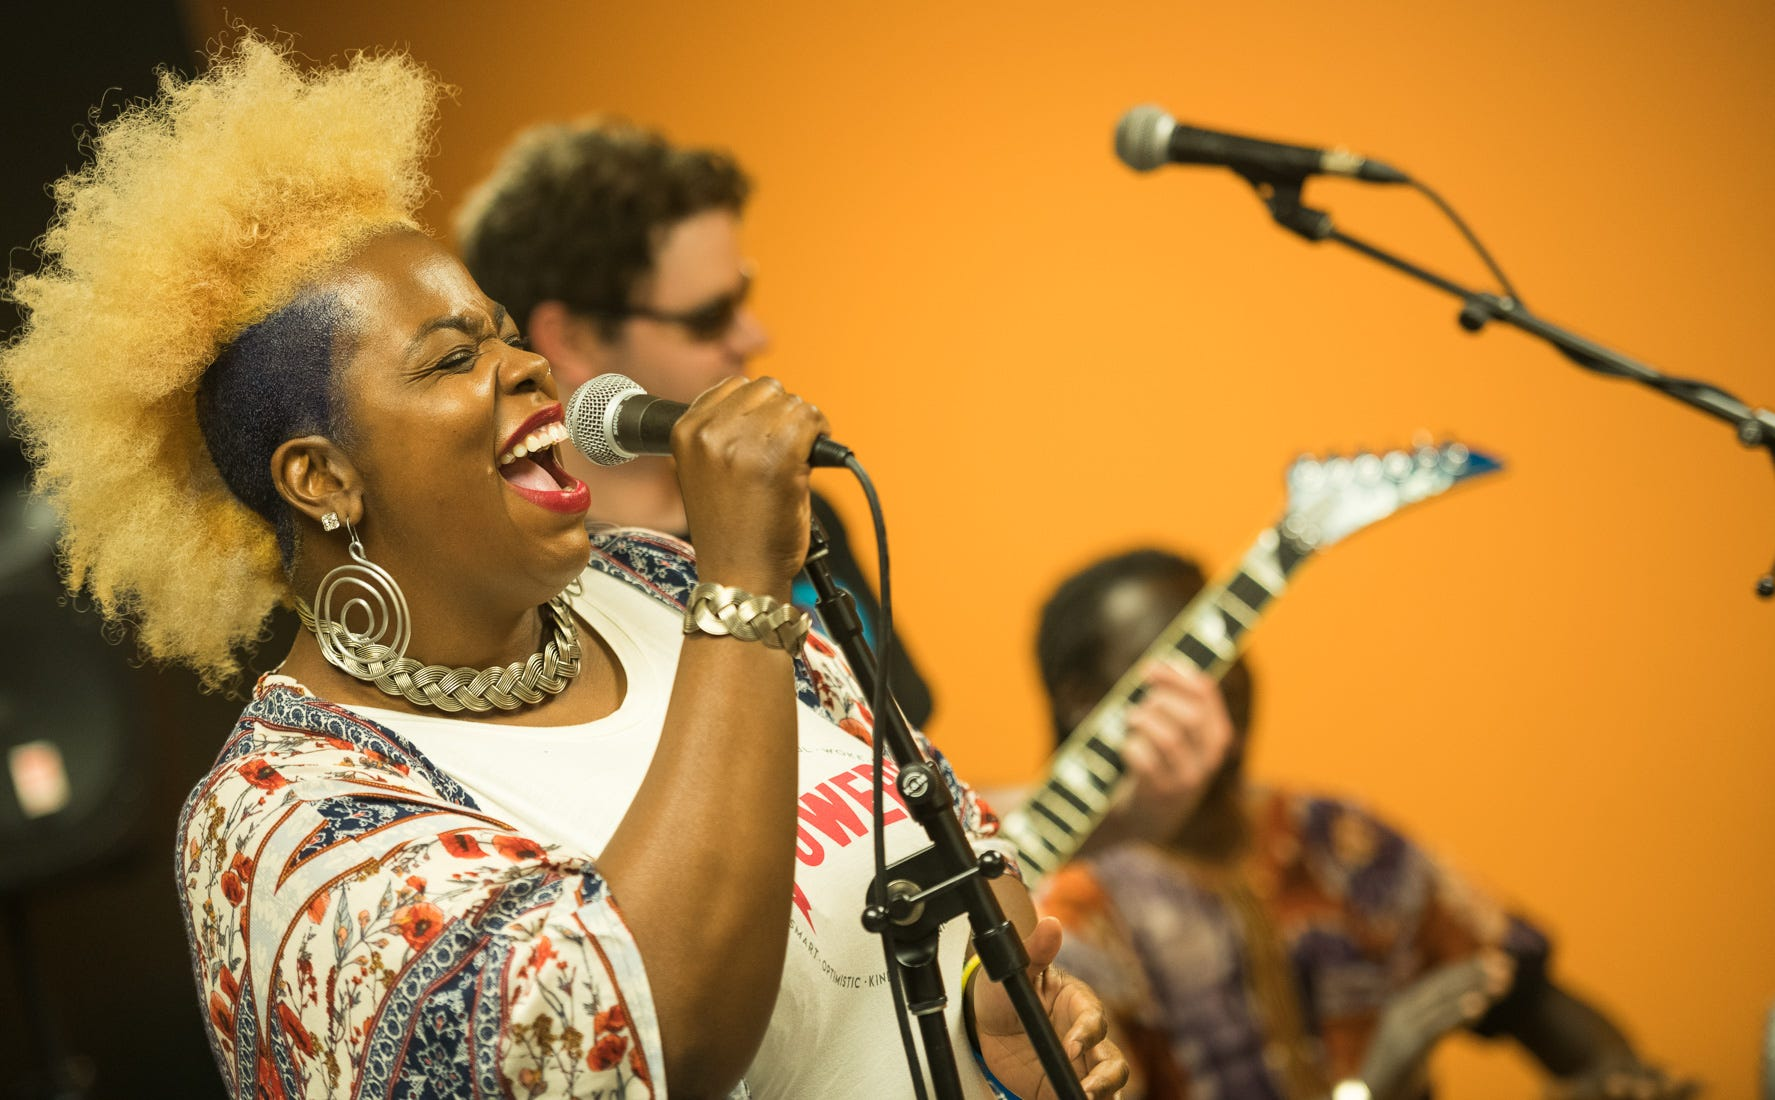 She can't speak after an accident, but Wilmington singer Terretta Howard still has a voice